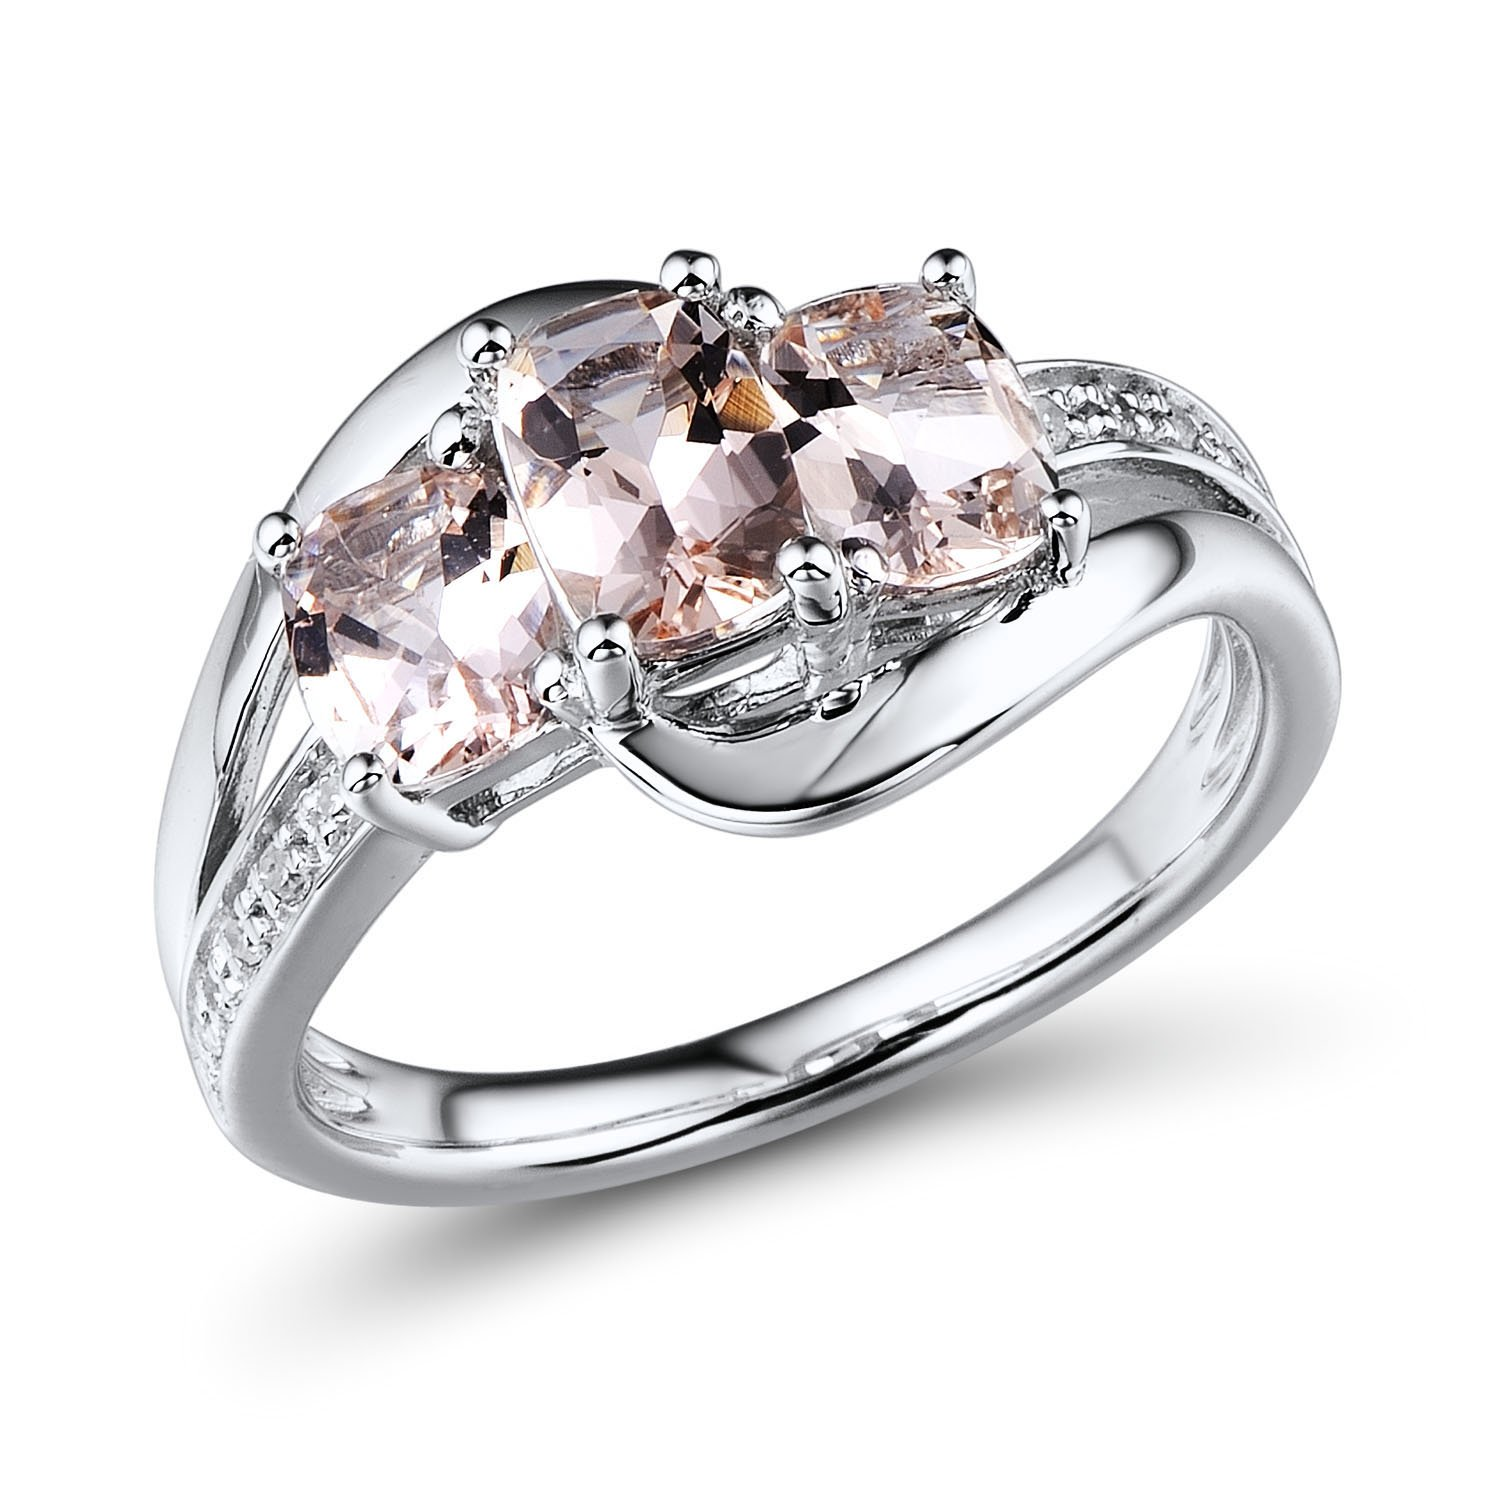 Morganite Ring with Diamond Accents in Rhodium Plated Sterling Silver